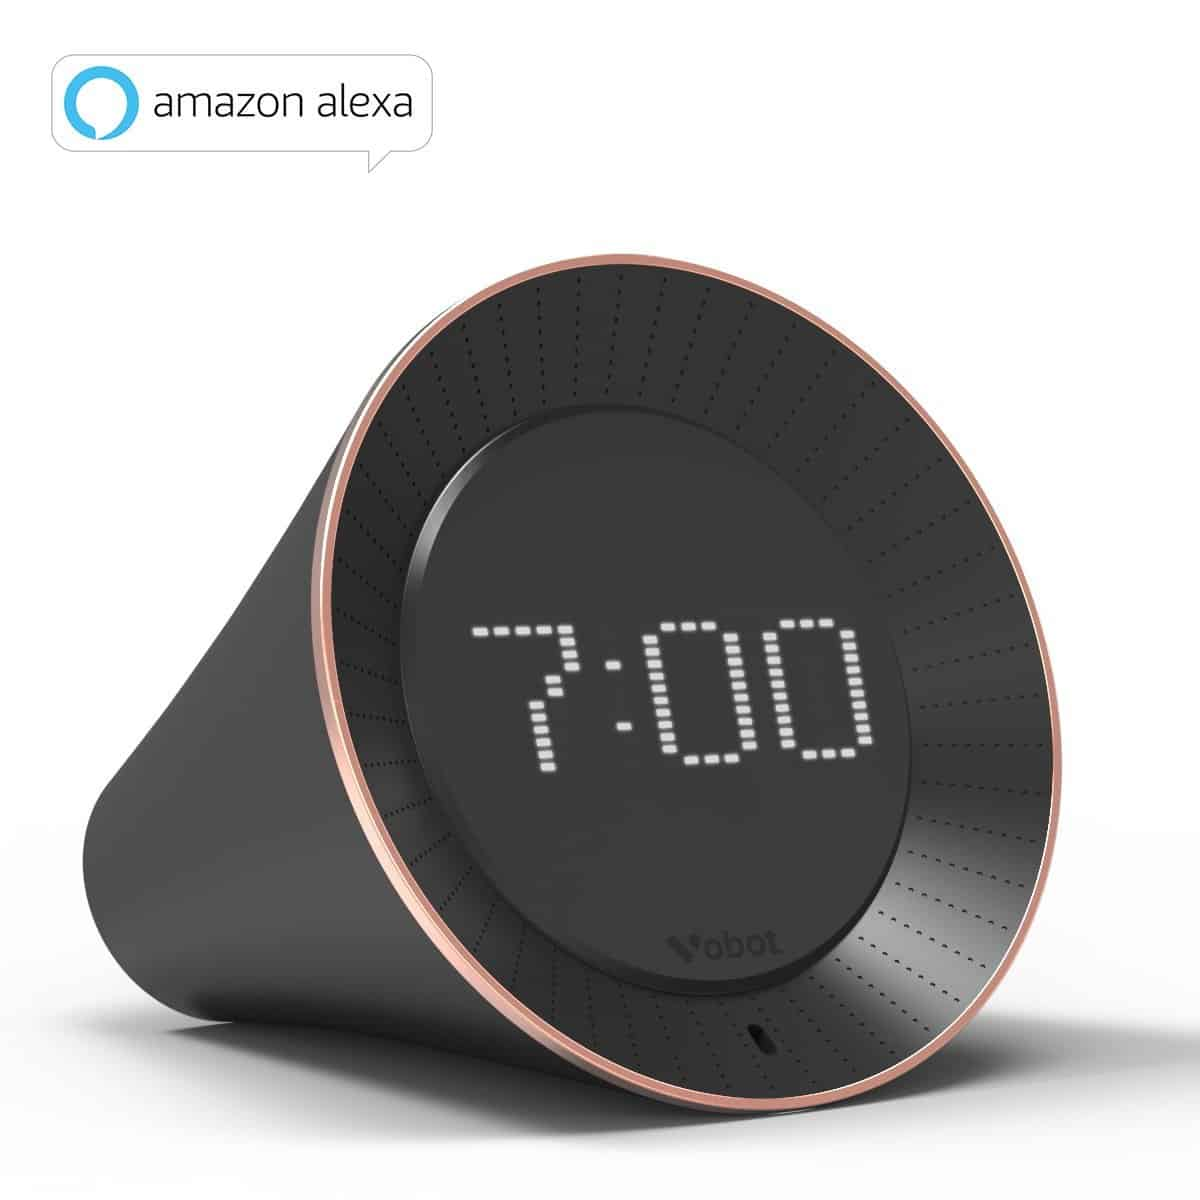 High End Alarm Clocks Vobot Smart Alarm Clock With Alexa Review Reviewify